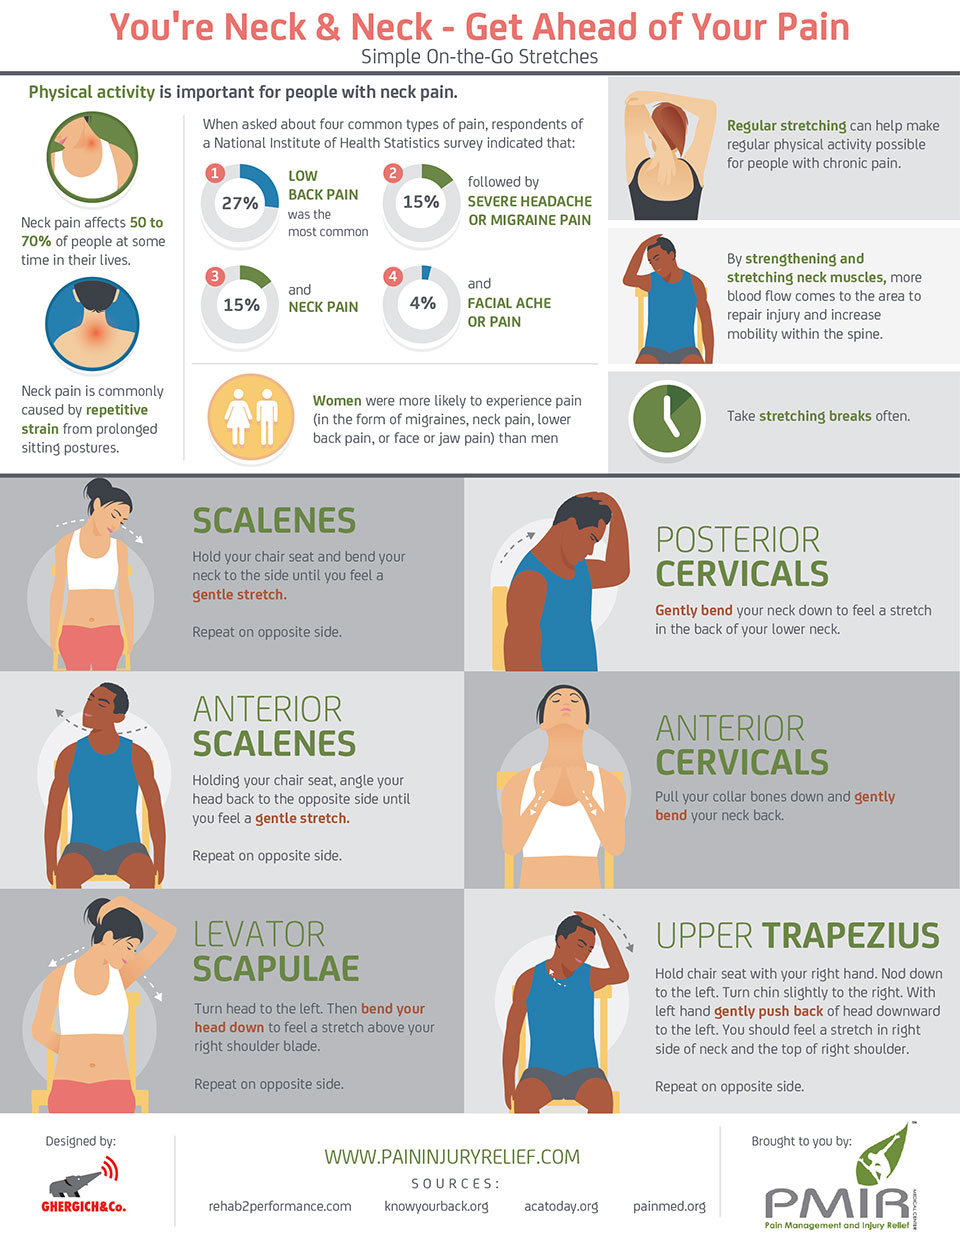 neck-pain-stretches